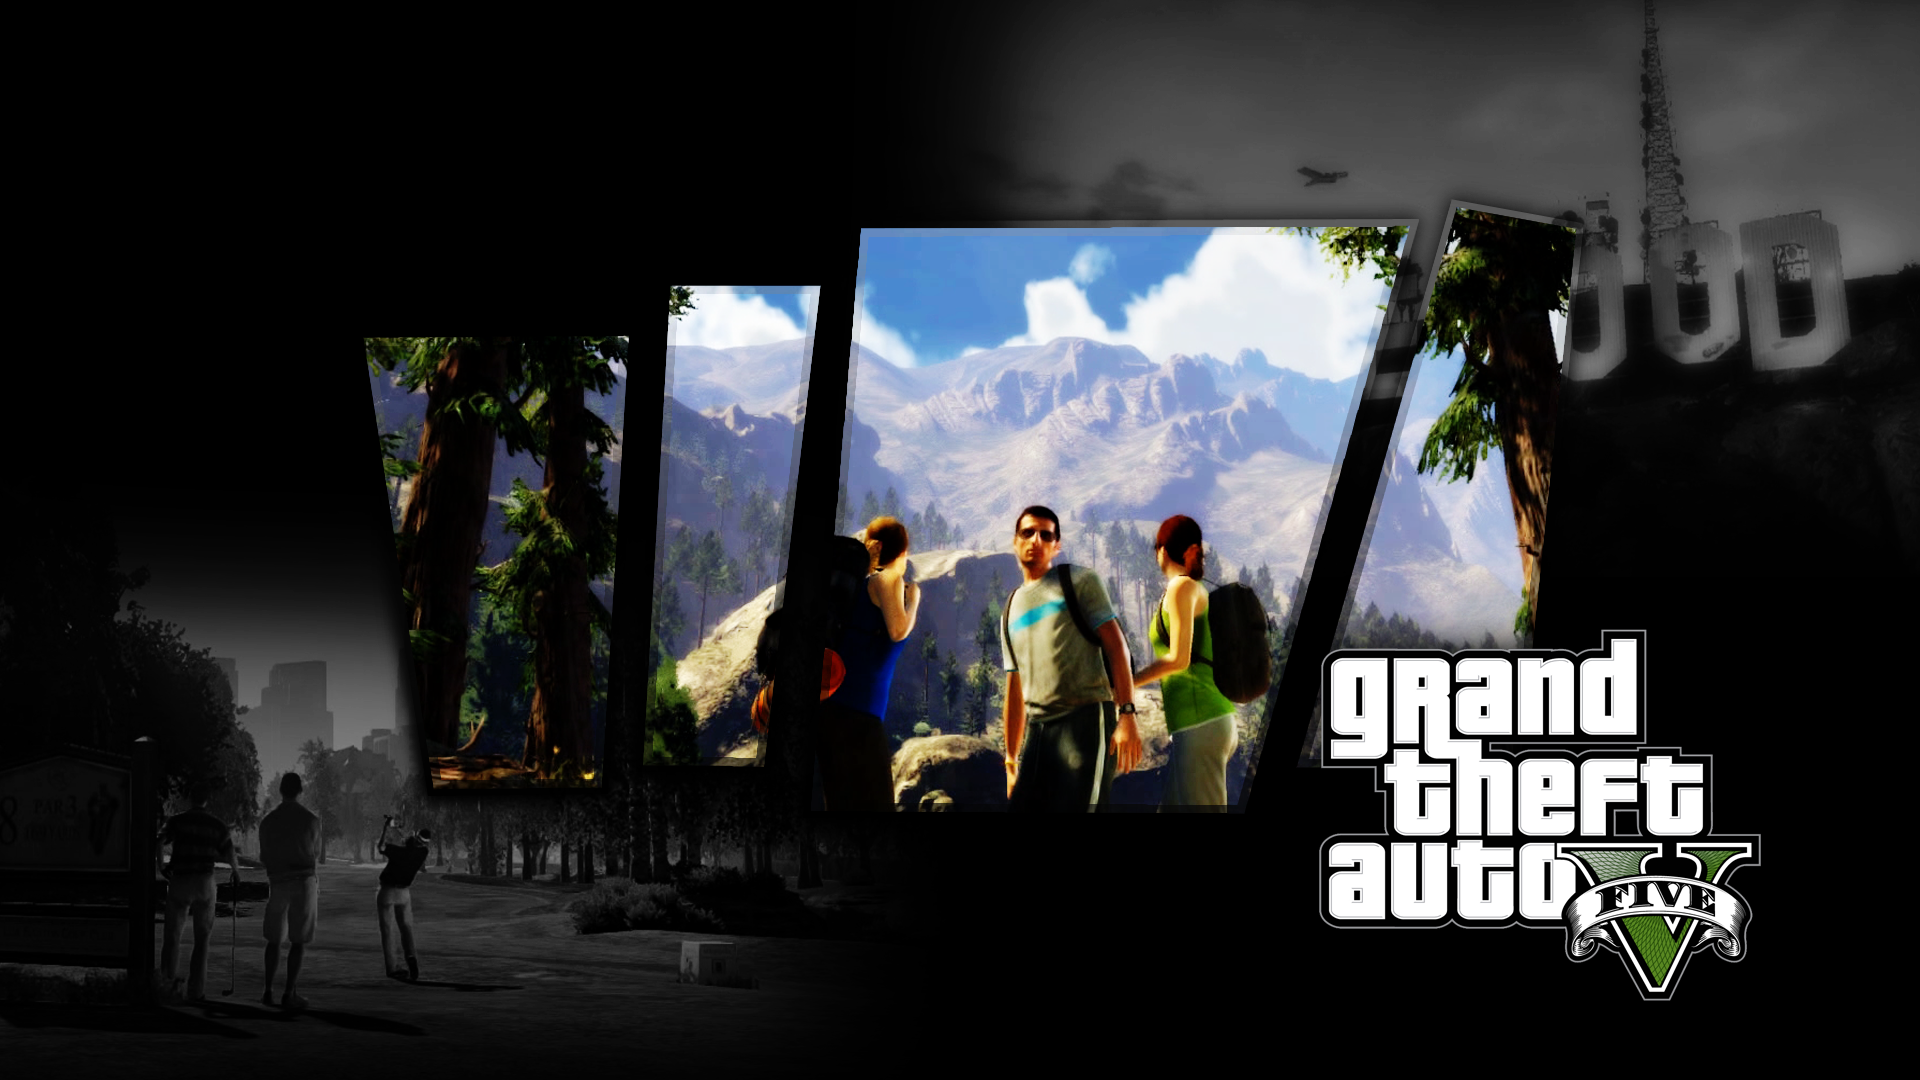 Pin by Tim Myers on Everything Gaming Grand theft auto